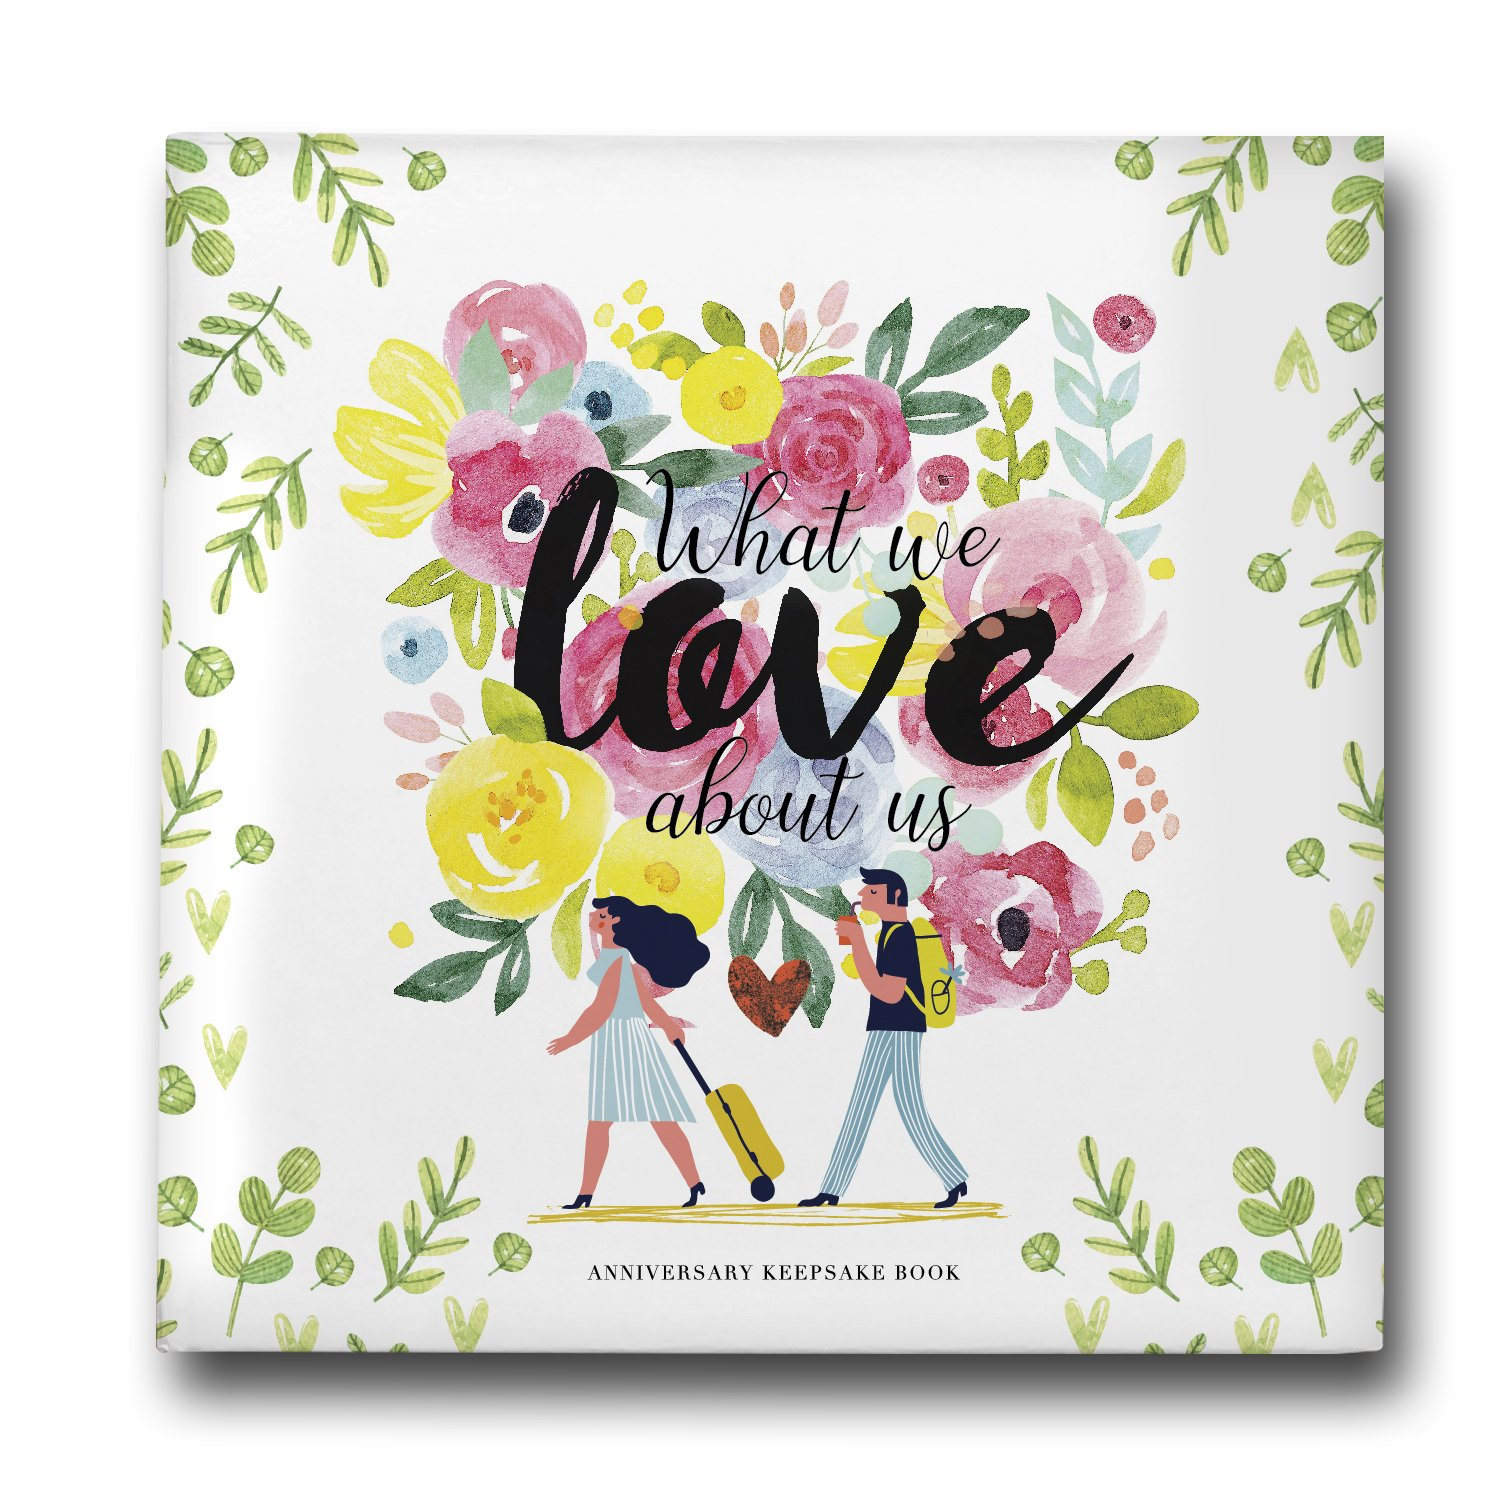 Pillow & Toast Our 1st Wedding Anniversary Journal: Memory Book & Photo Album for Couples. Fill in Diary for Proposal, Wedding Day and Milestones. Bride Gift Ideas 2018!